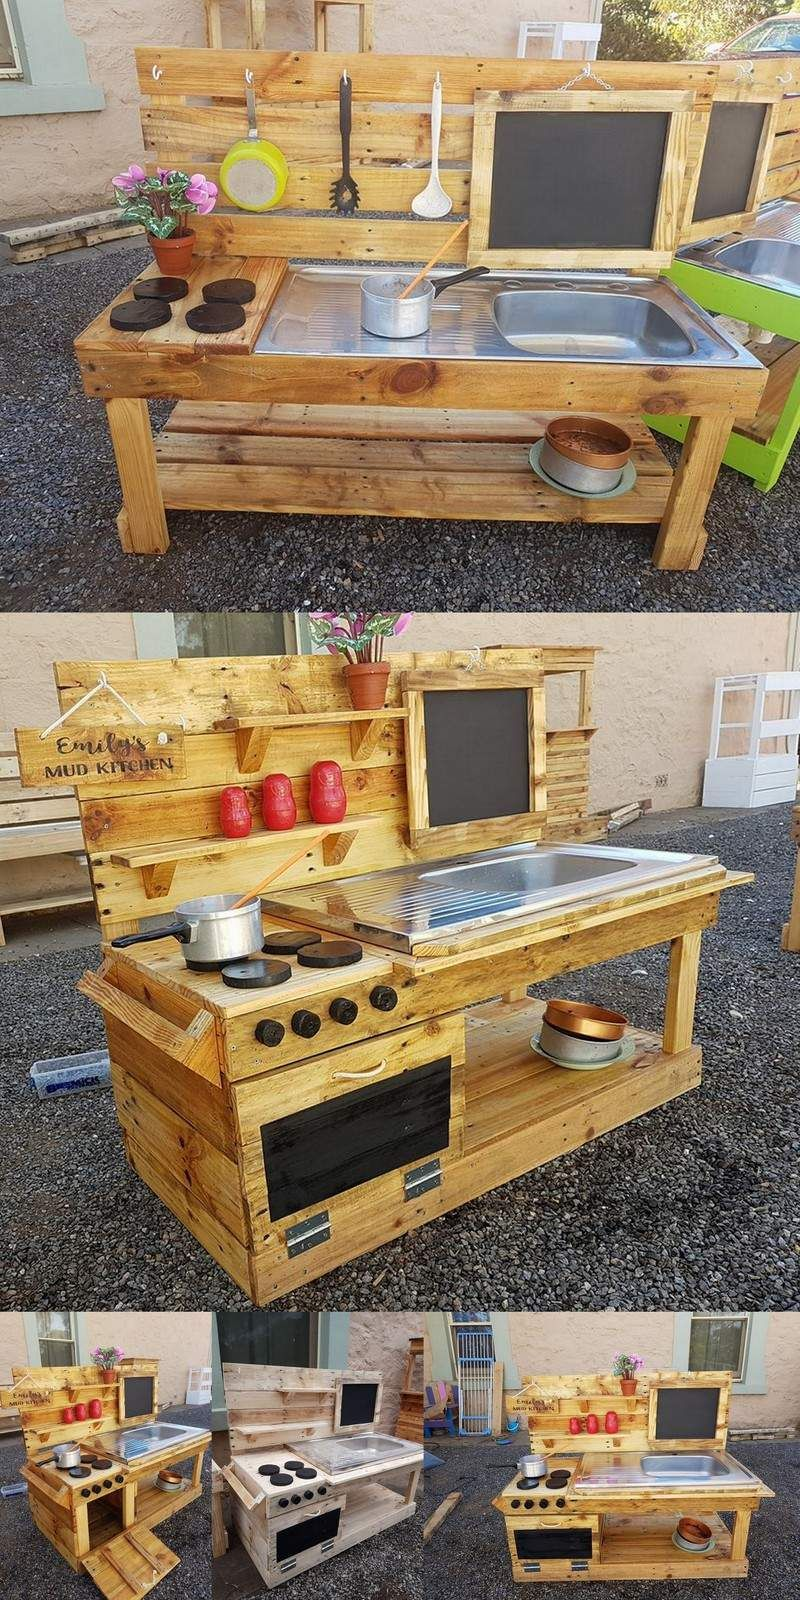 Pallet Wood Outdoor Kitchen Idea In 2019 Diy Outdoor Kitchen Outdoor Play Kitchen Mud